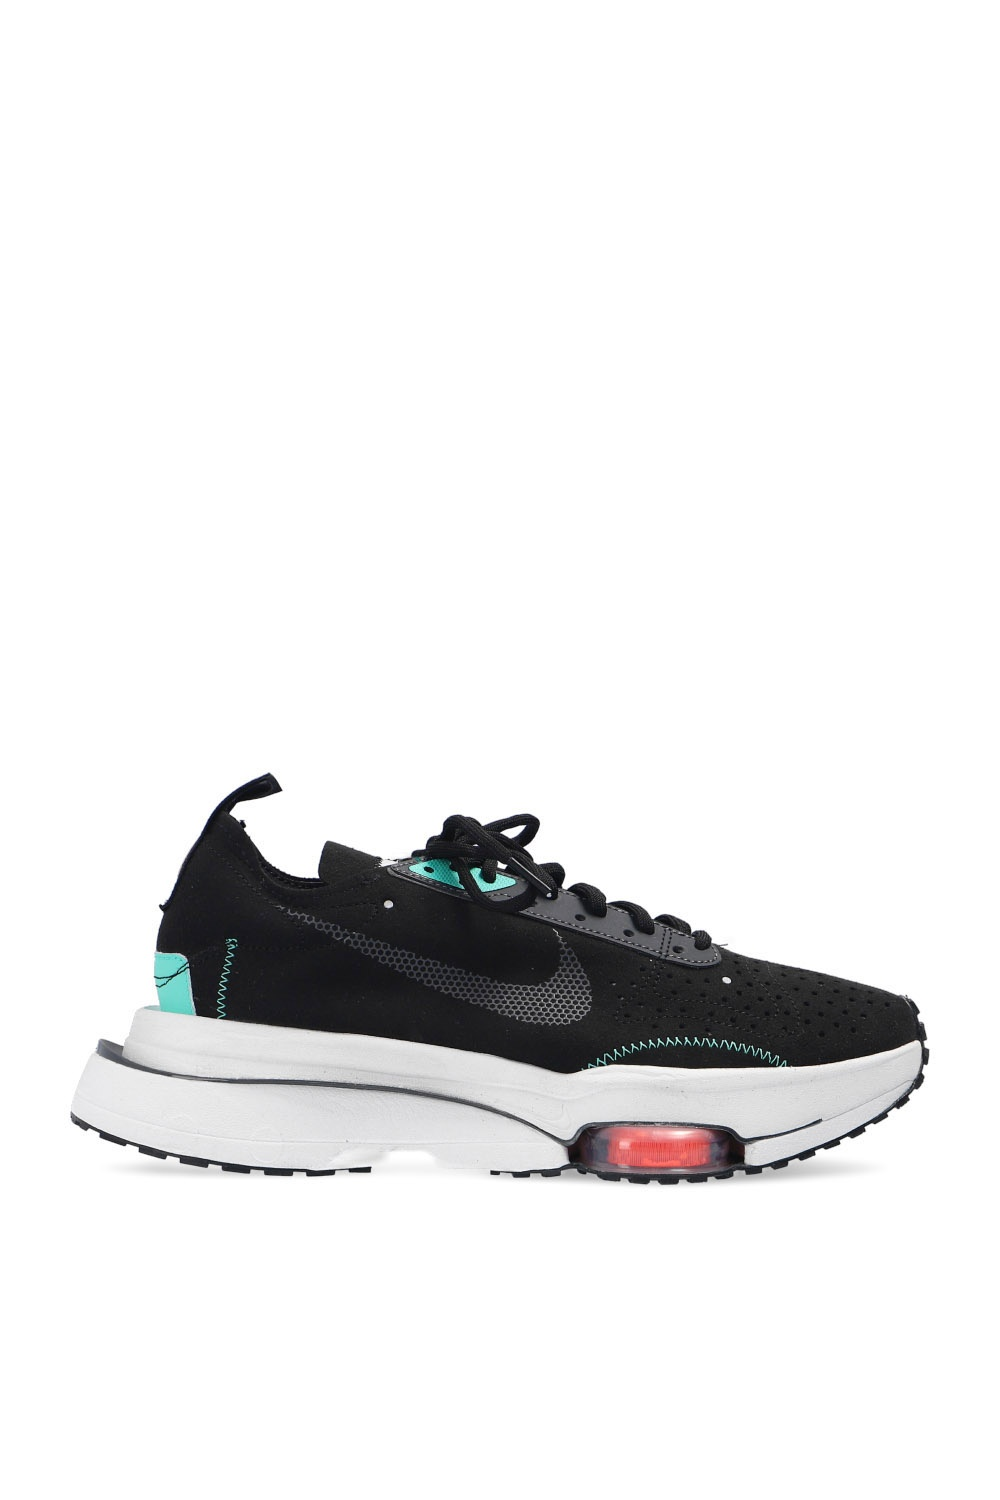 Nike 'Air Zoom Type' sneakers